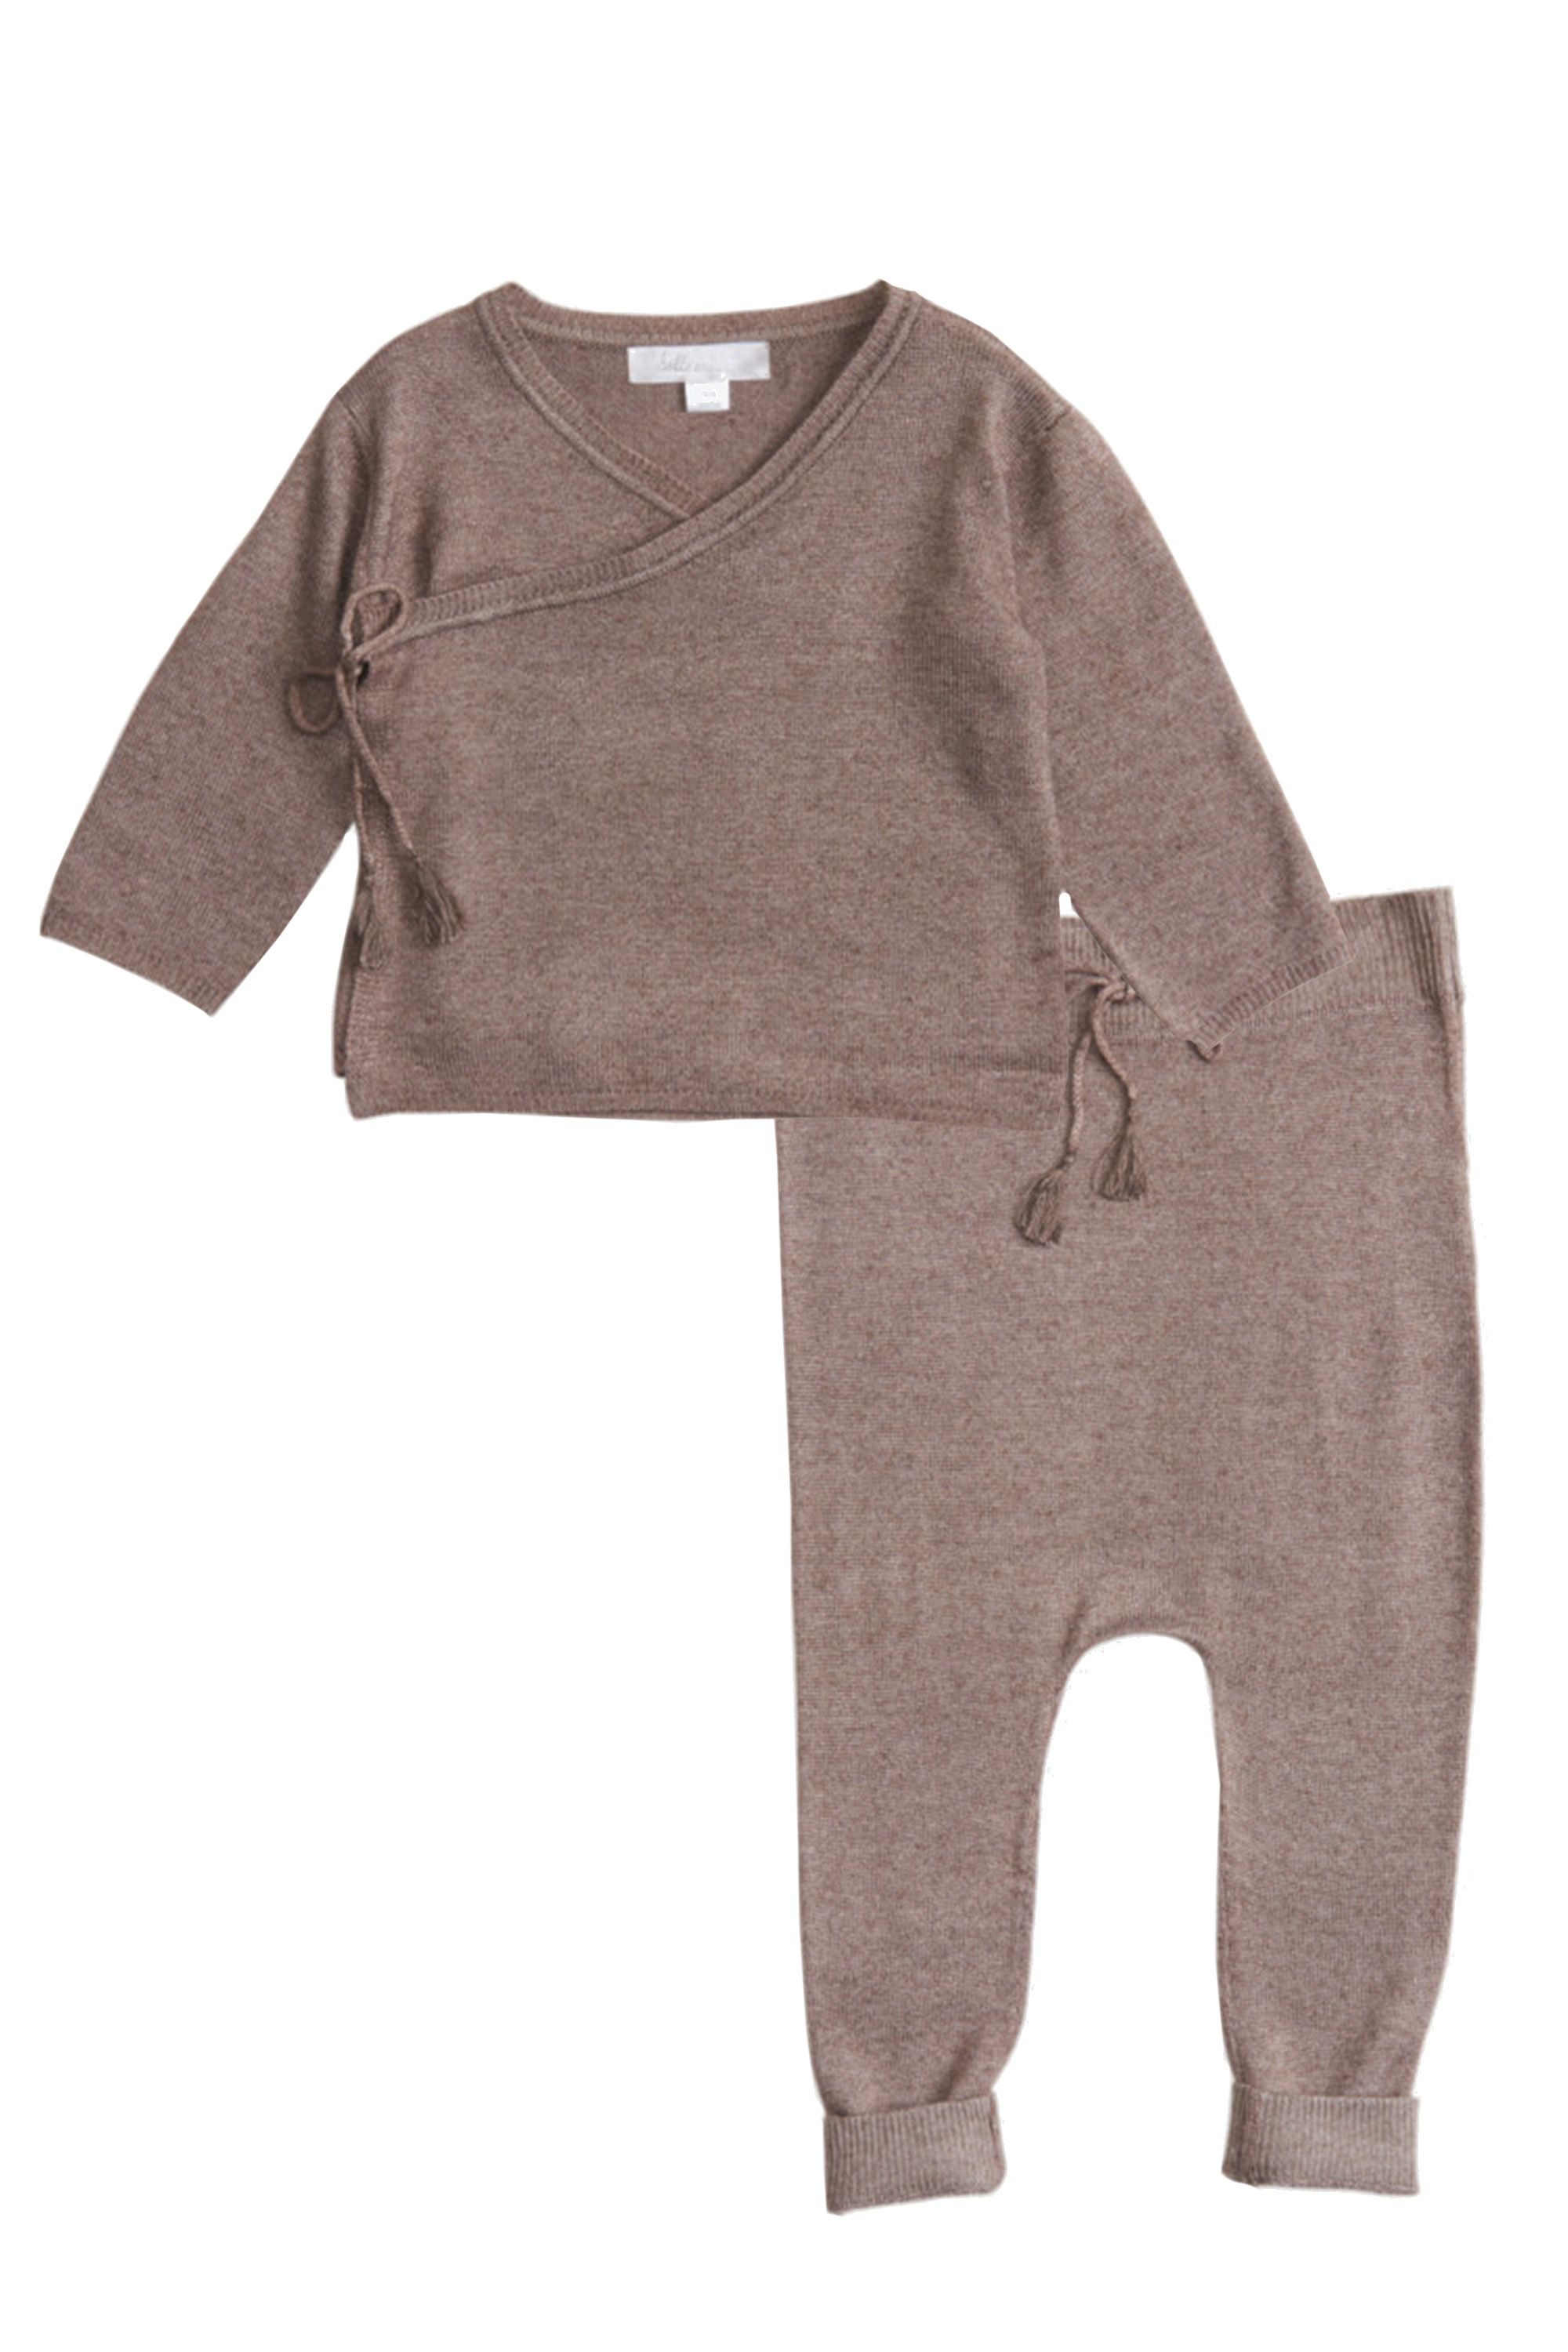 25 Designer Baby Clothes That Are Too Adorable to Exist 25